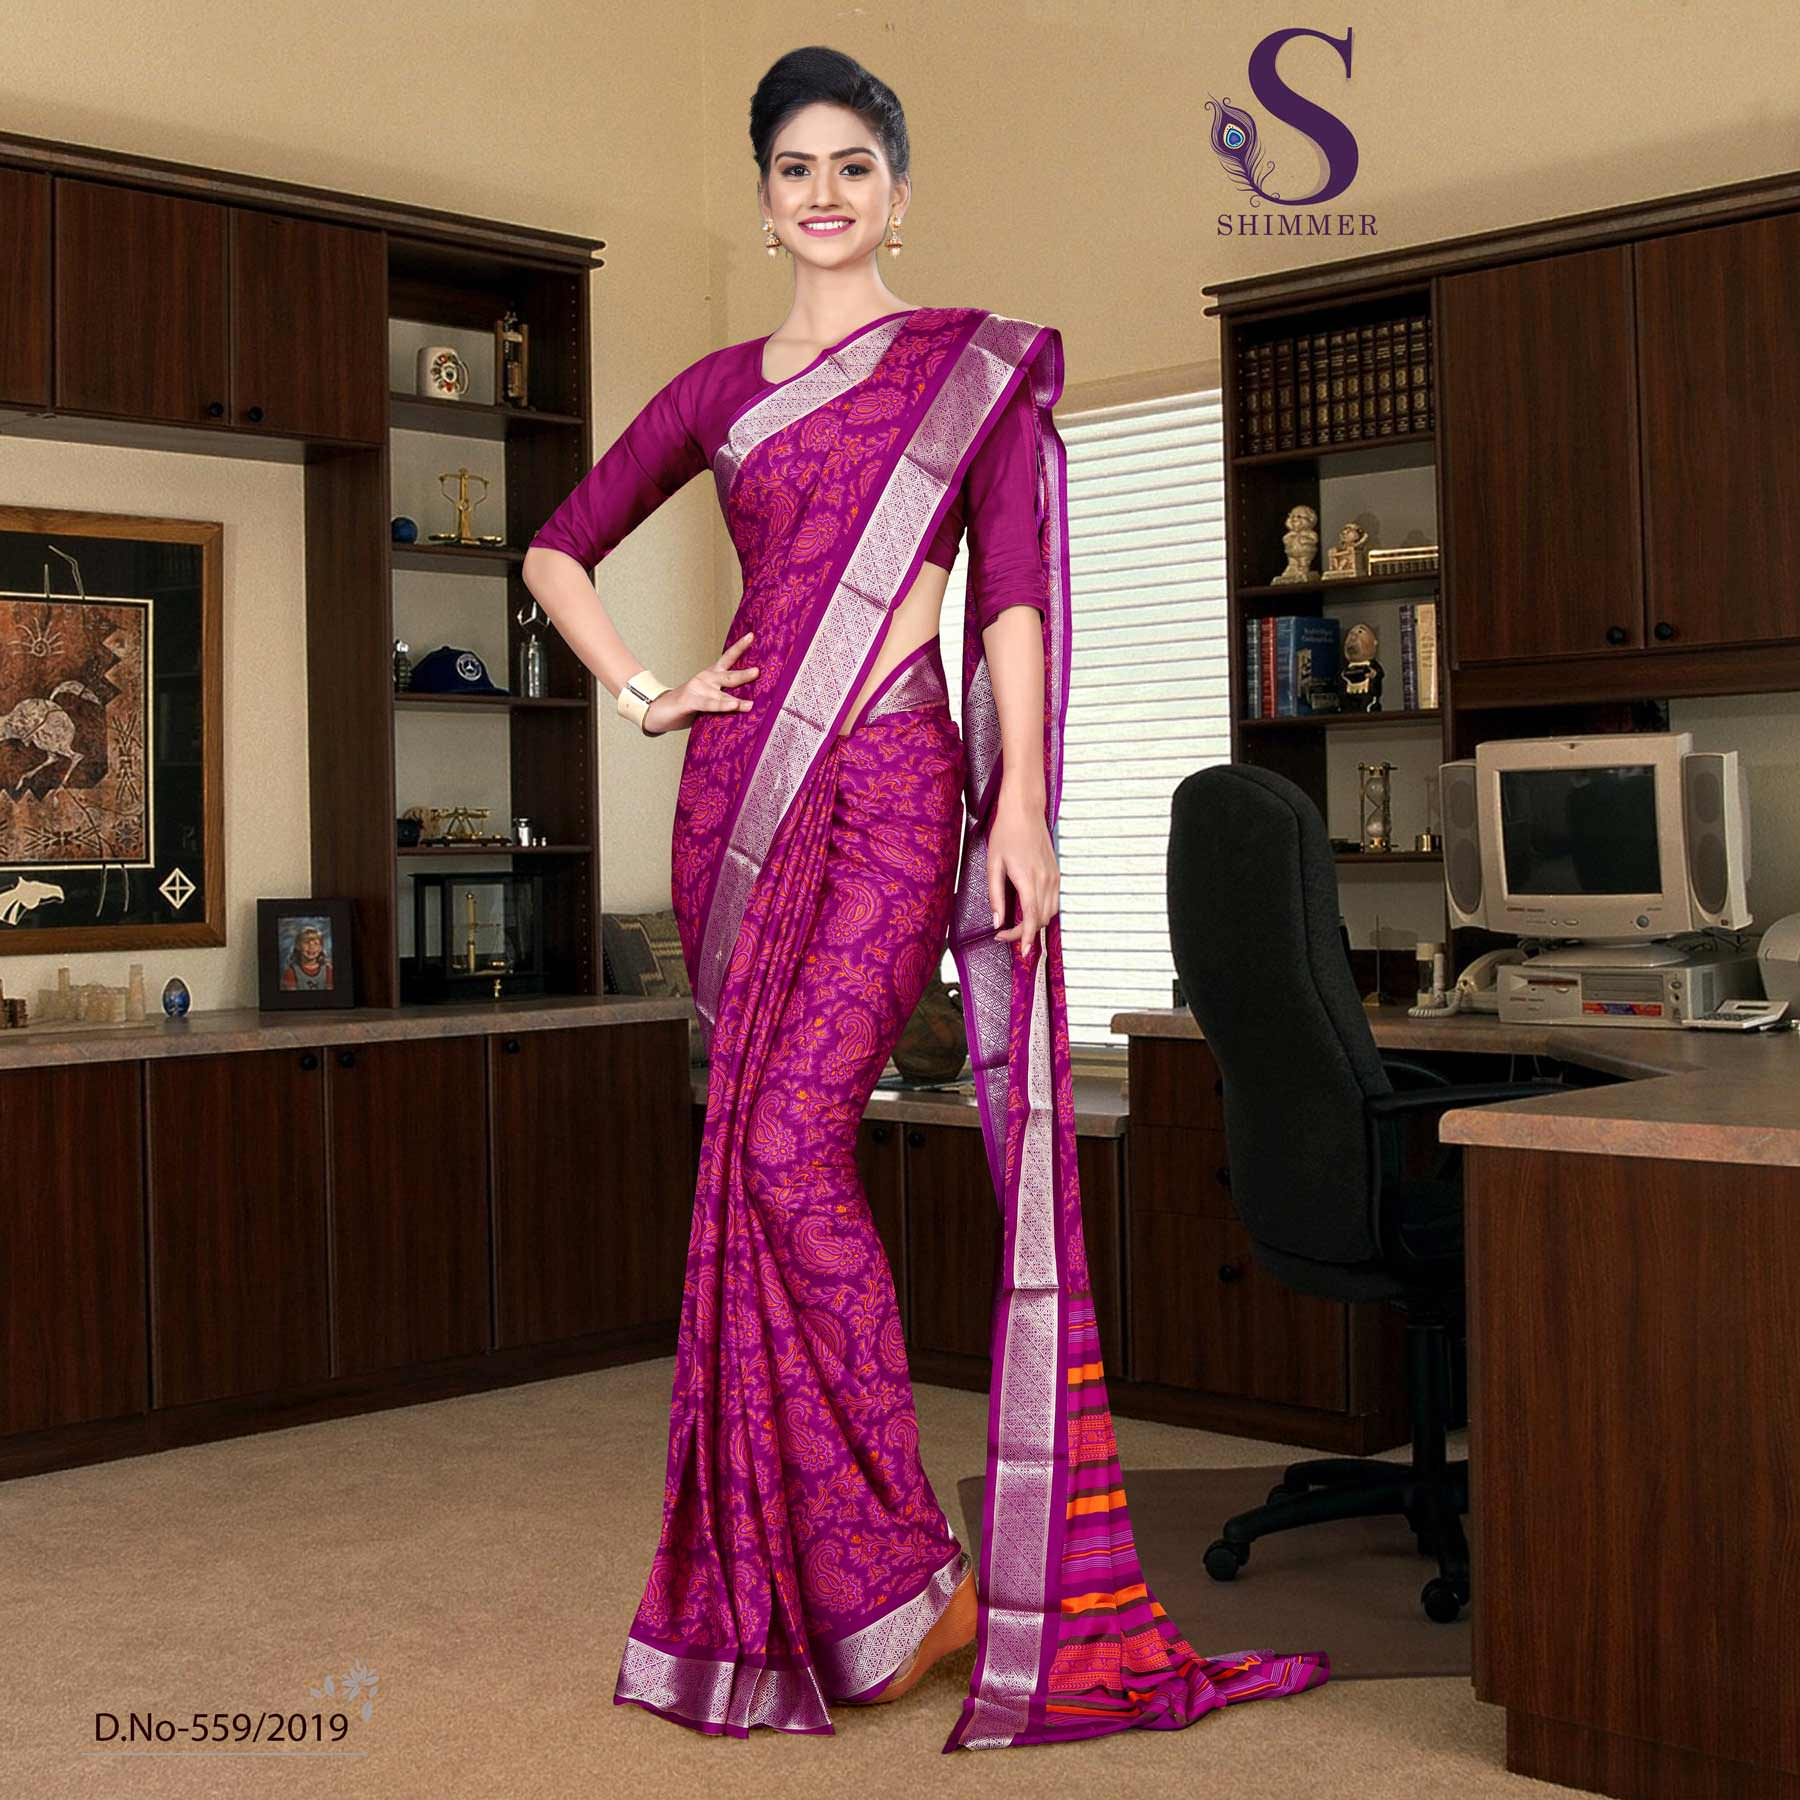 an image of Voilet purple silk crepe jaquard border hospital  uniform sarees with product logo and sku number